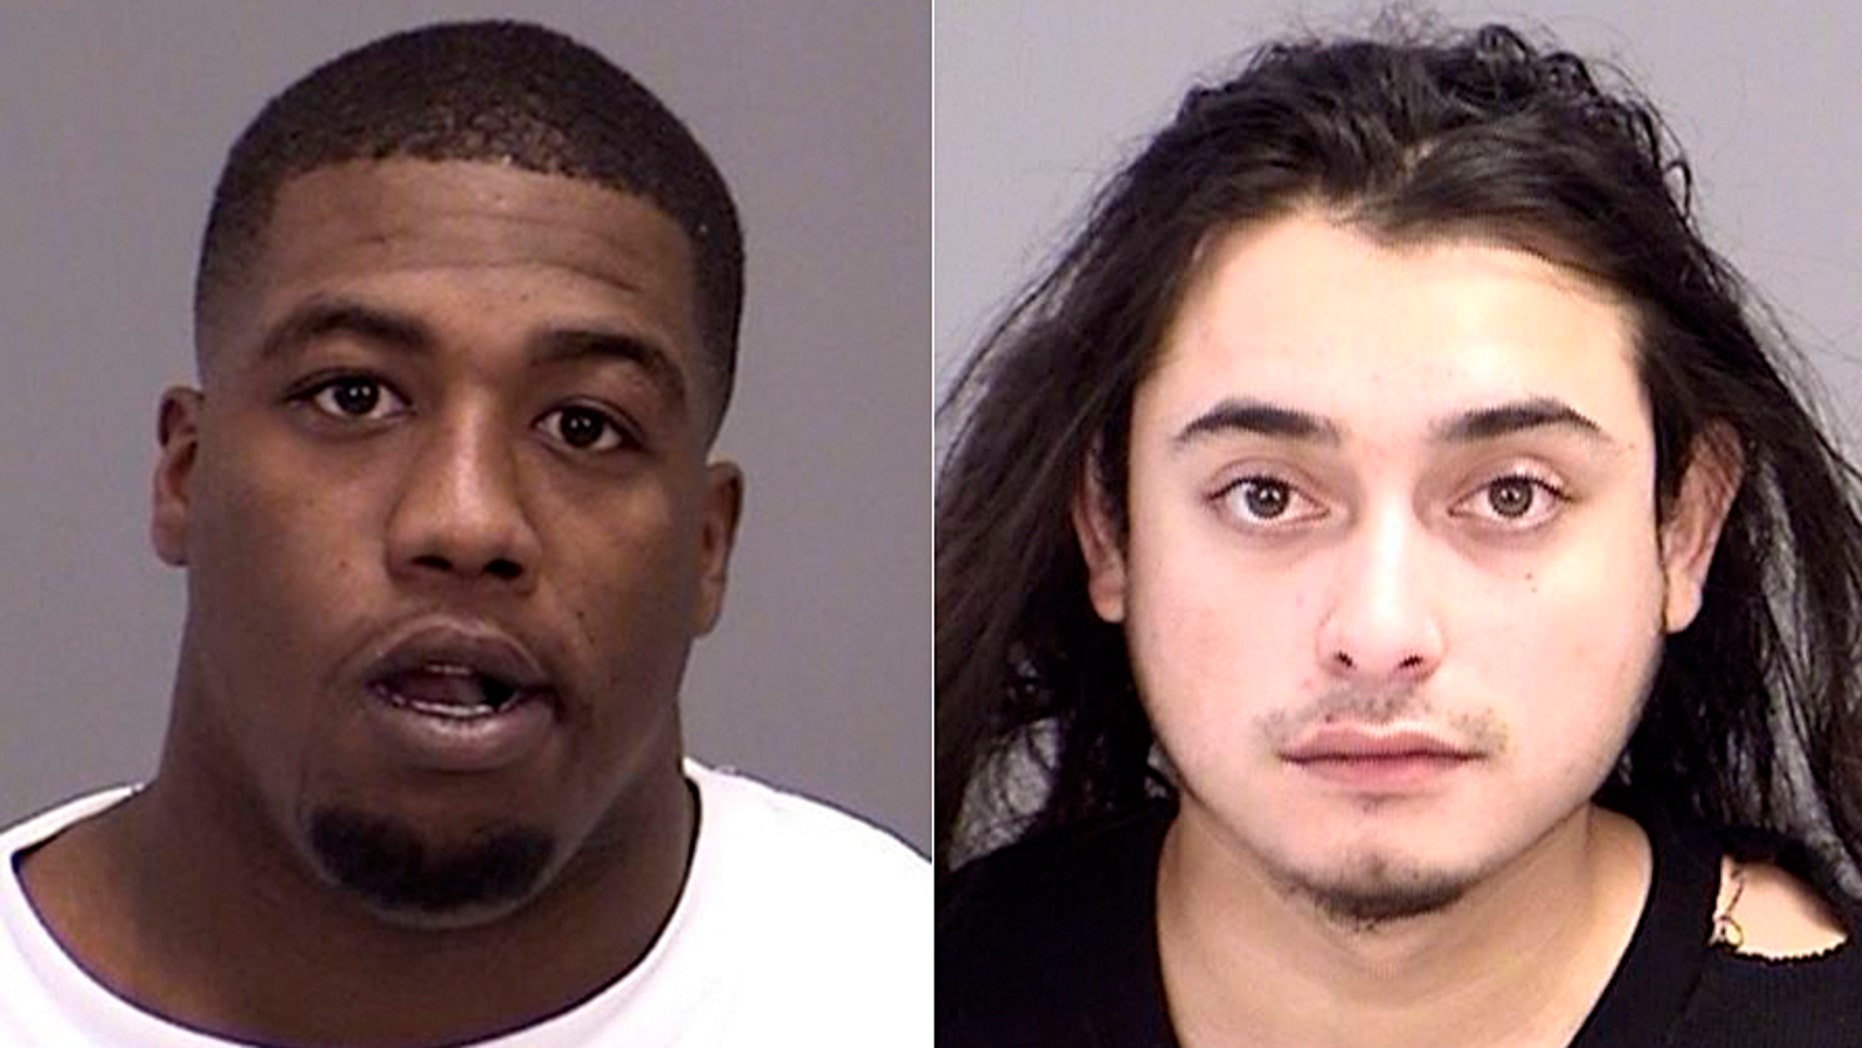 Zaycoven Henderson, left, and Terry Florez Jr. were arrested early Sunday.